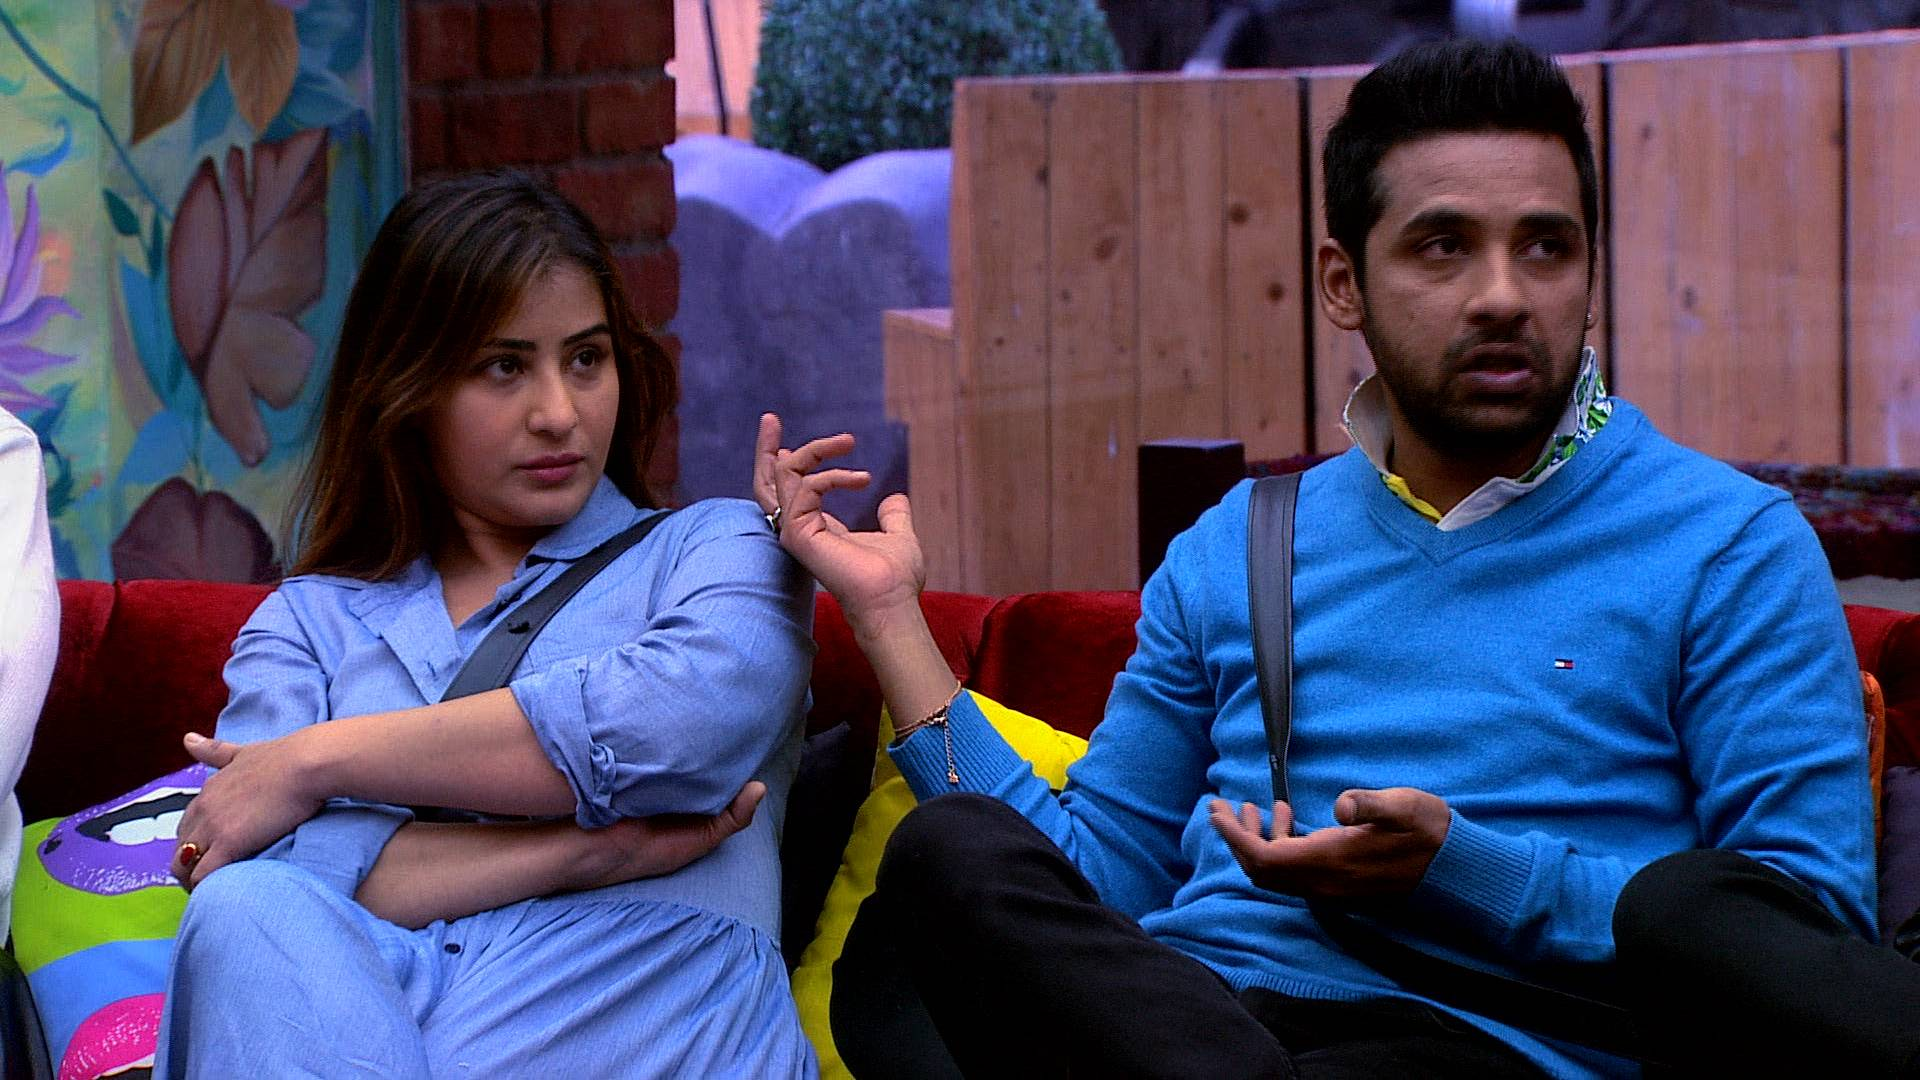 Here's some more that's coming up tonight on Bigg Boss 11!